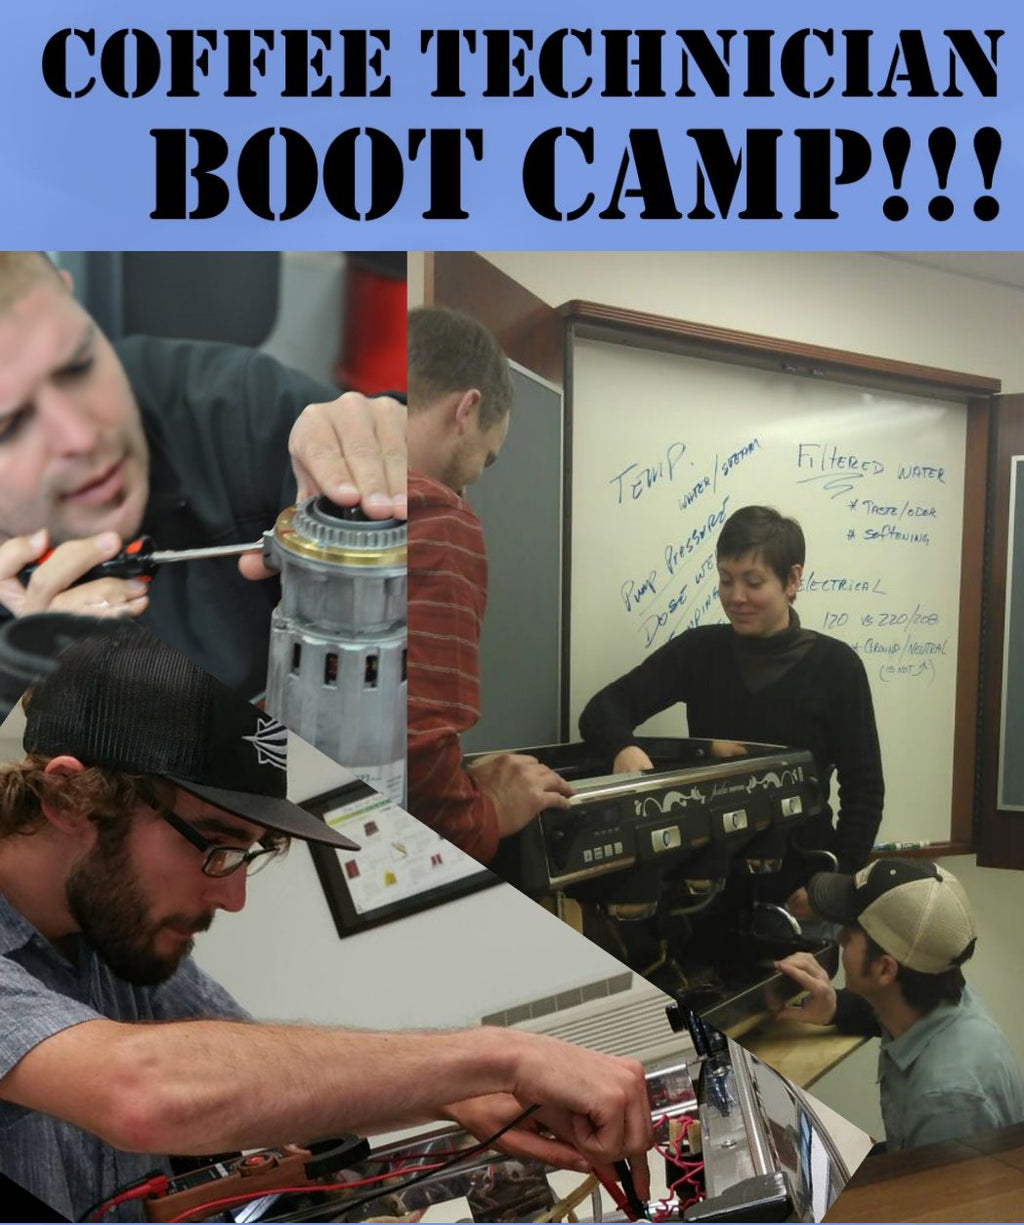 Coffee Technicians Bootcamp